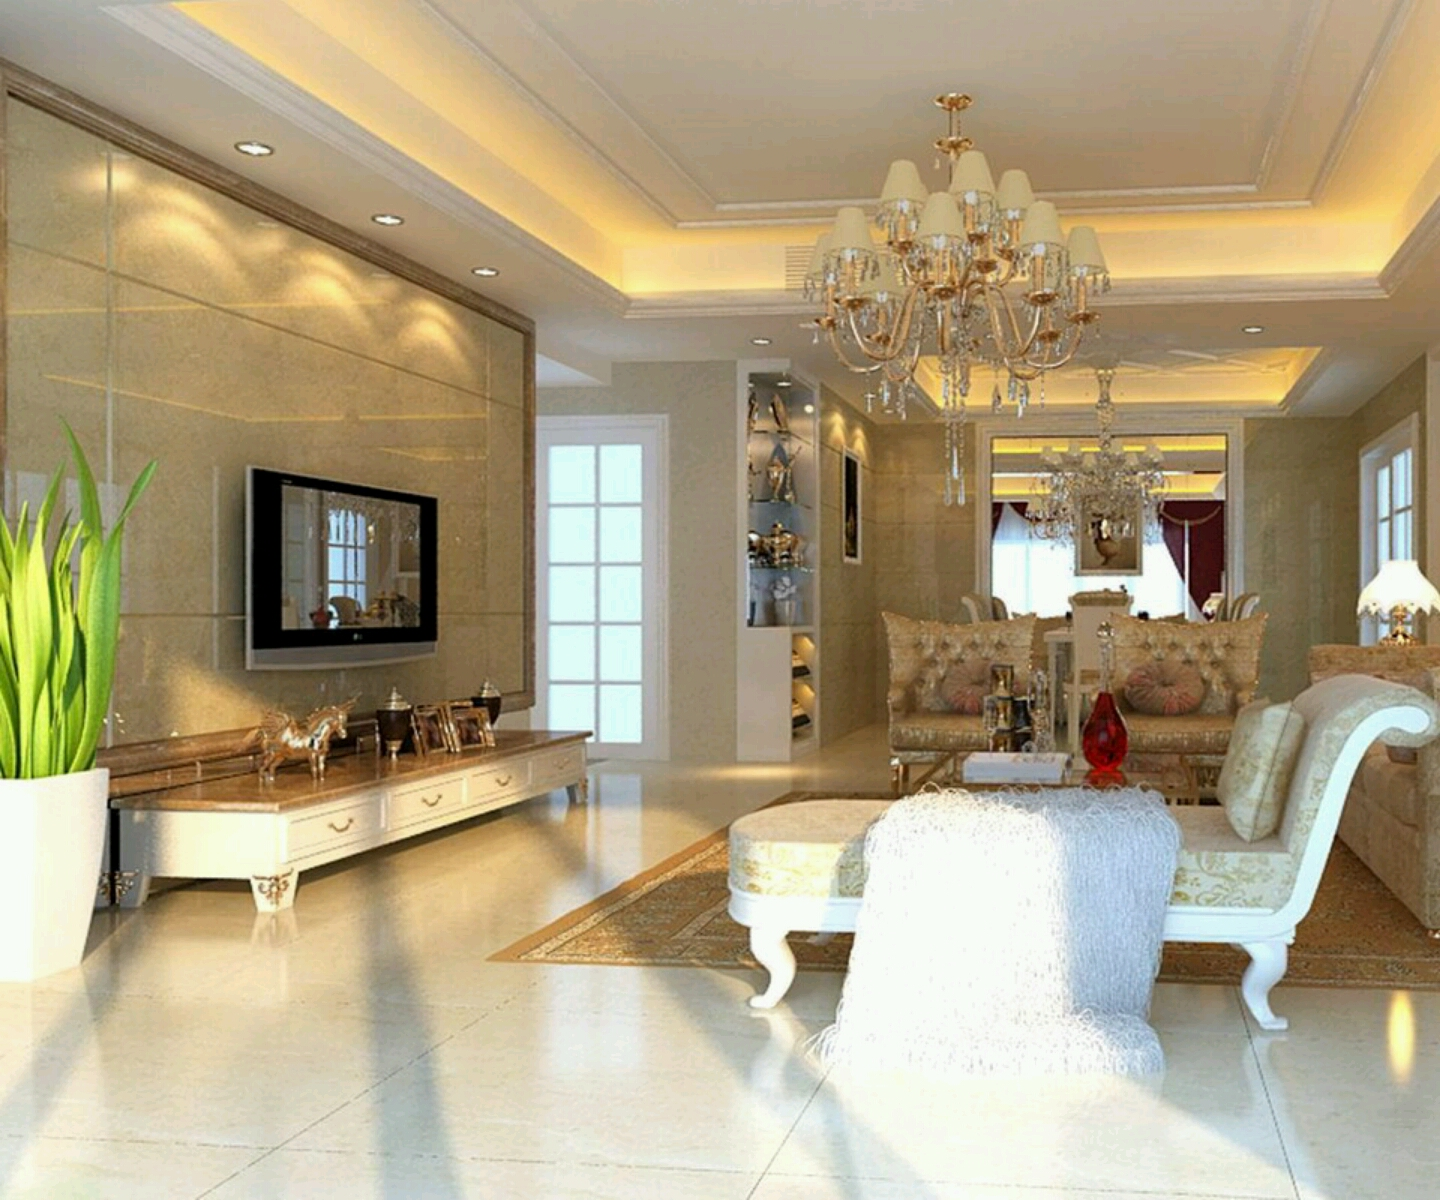 New home designs latest luxury homes interior decoration for Latest house decorating ideas